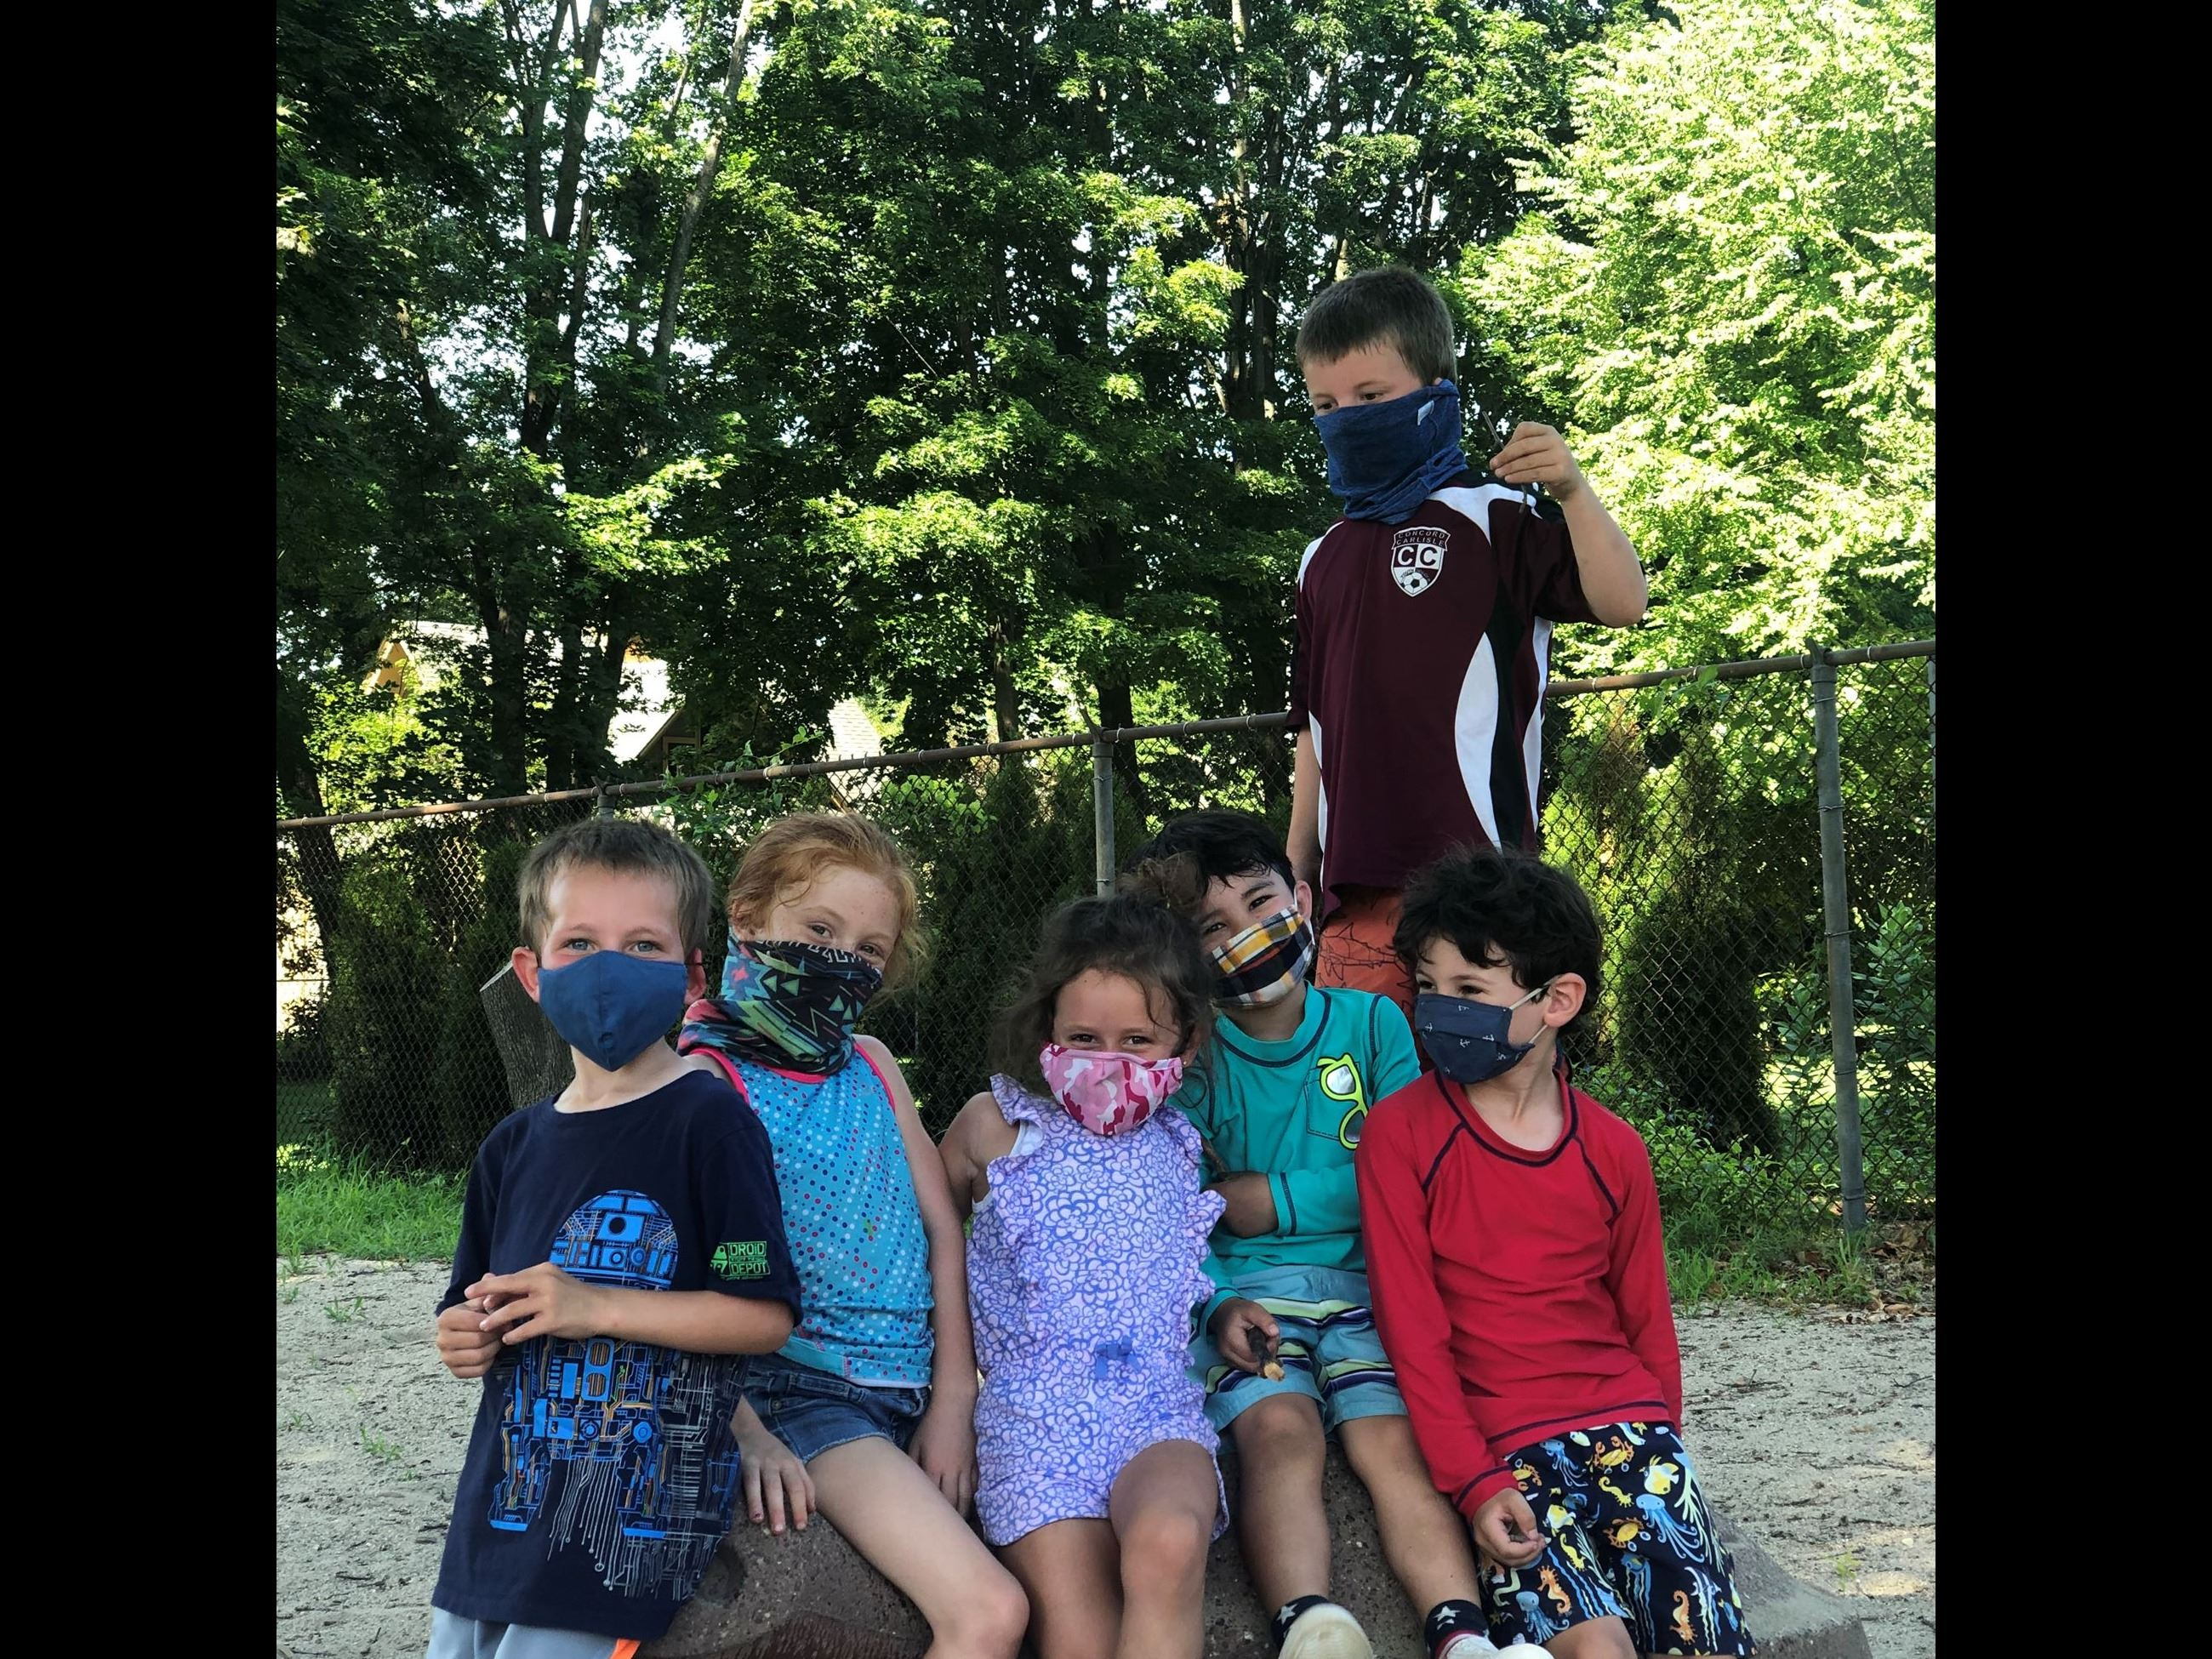 Summer 2020 photo of campers with masks